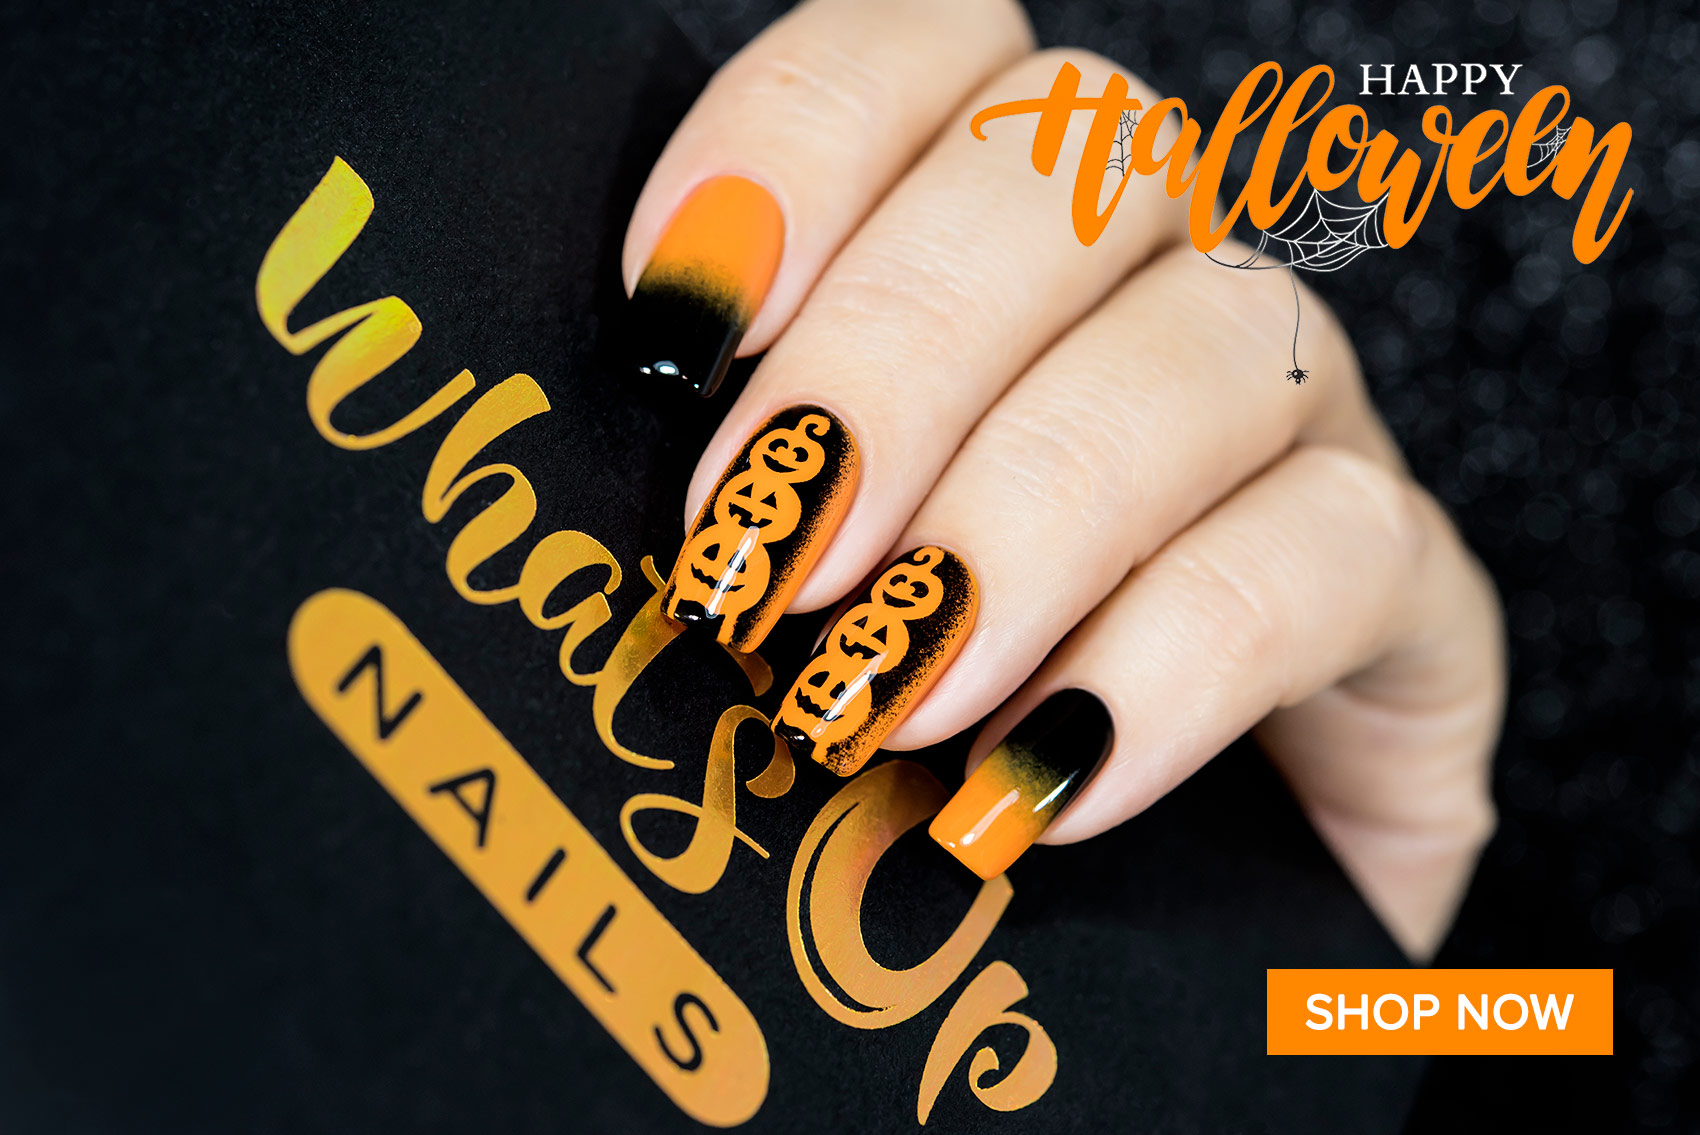 Halloween Nail Art Products - Shop Now